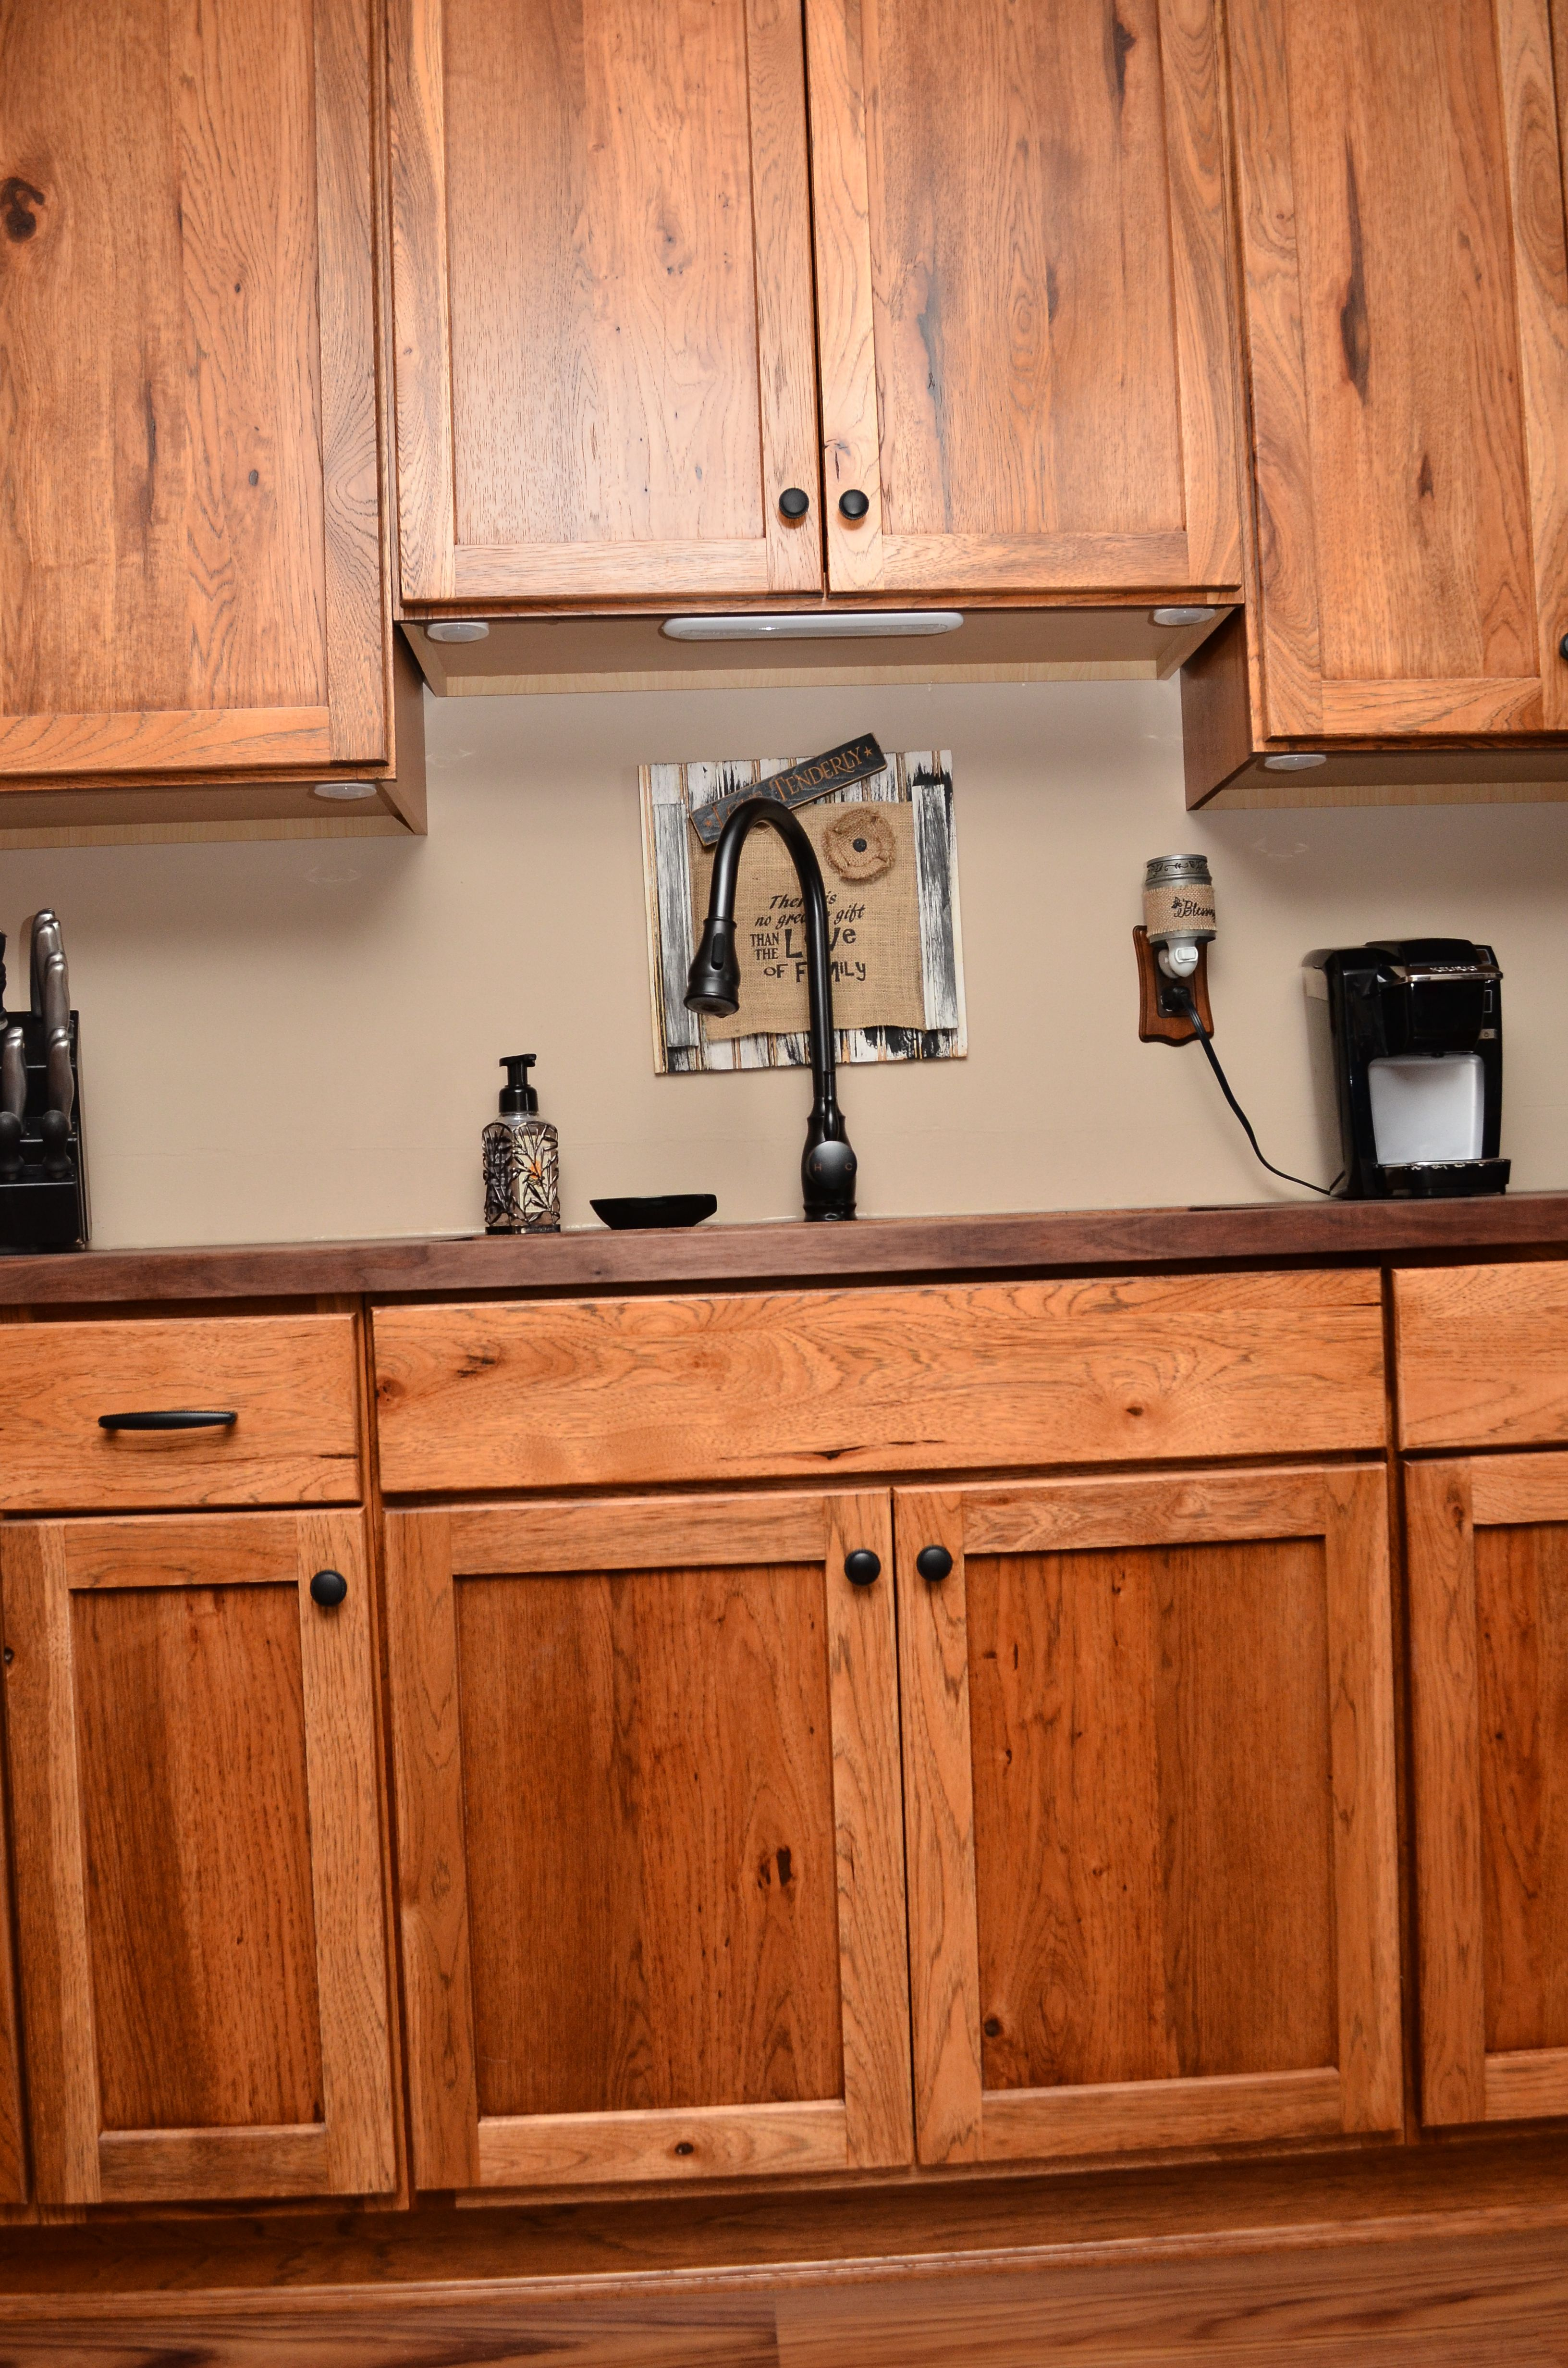 Haas Signature Shakertown V Rustic Hickory Pecan Kitchen Cabinets Kitchen Design Hickory Kitchen Cabinets